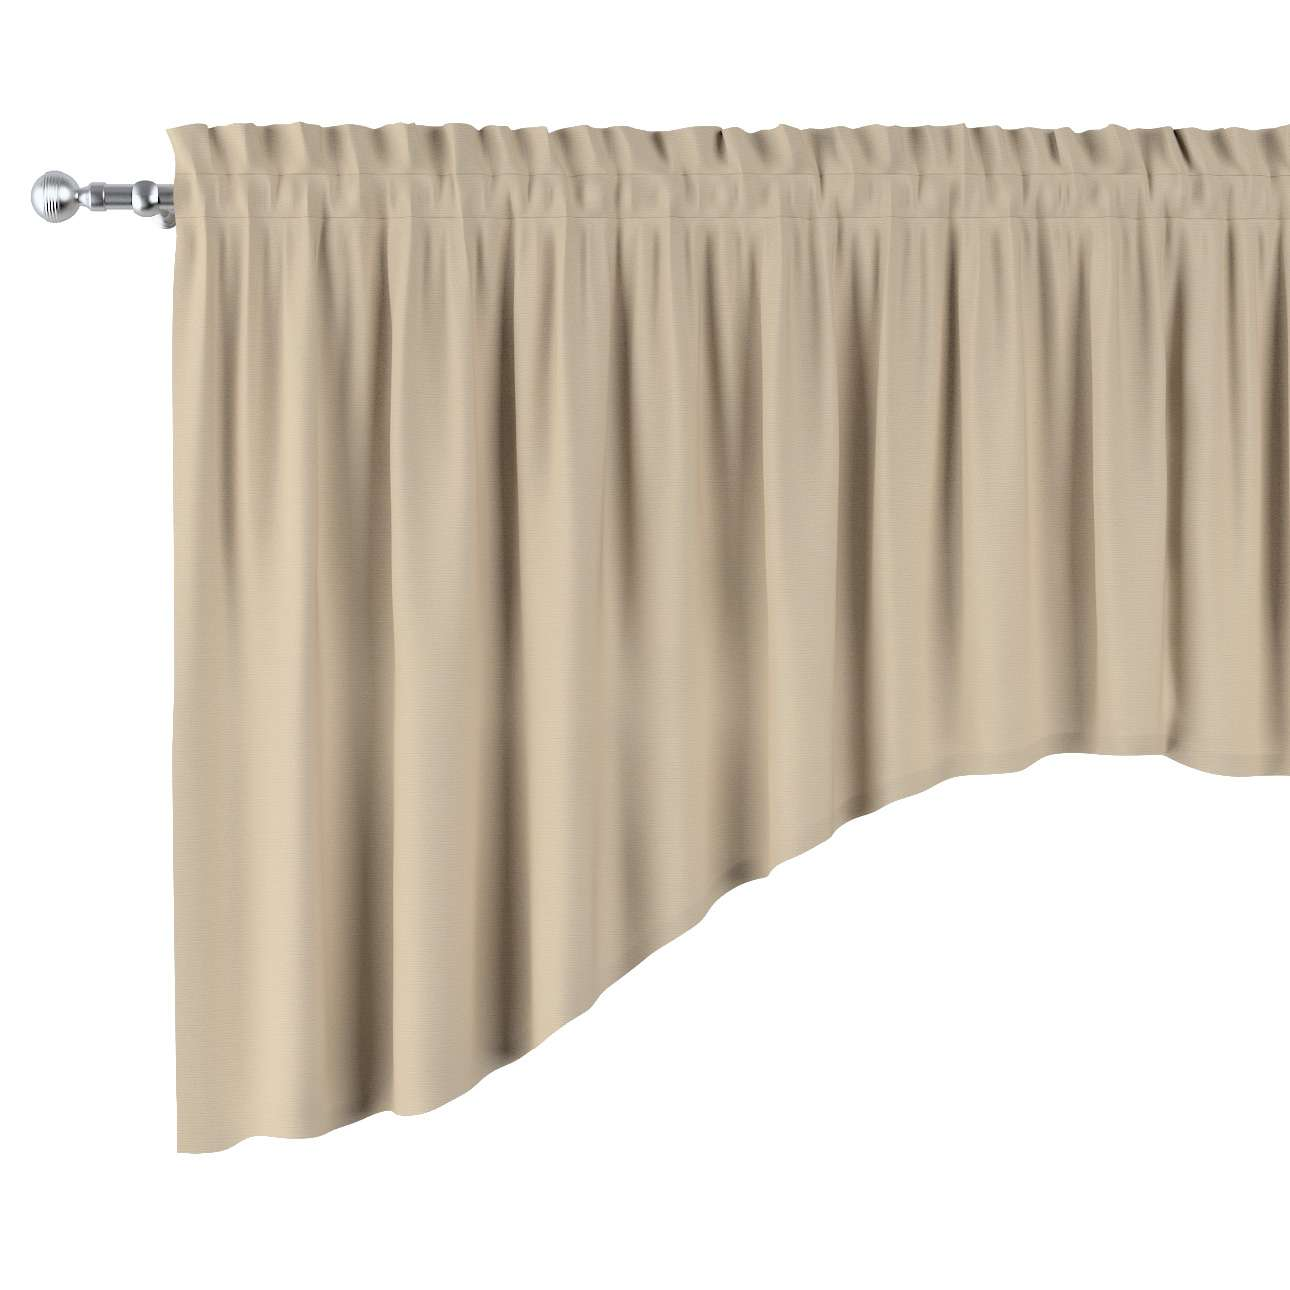 Bow lambrequin in collection Cotton Story, fabric: 702-01